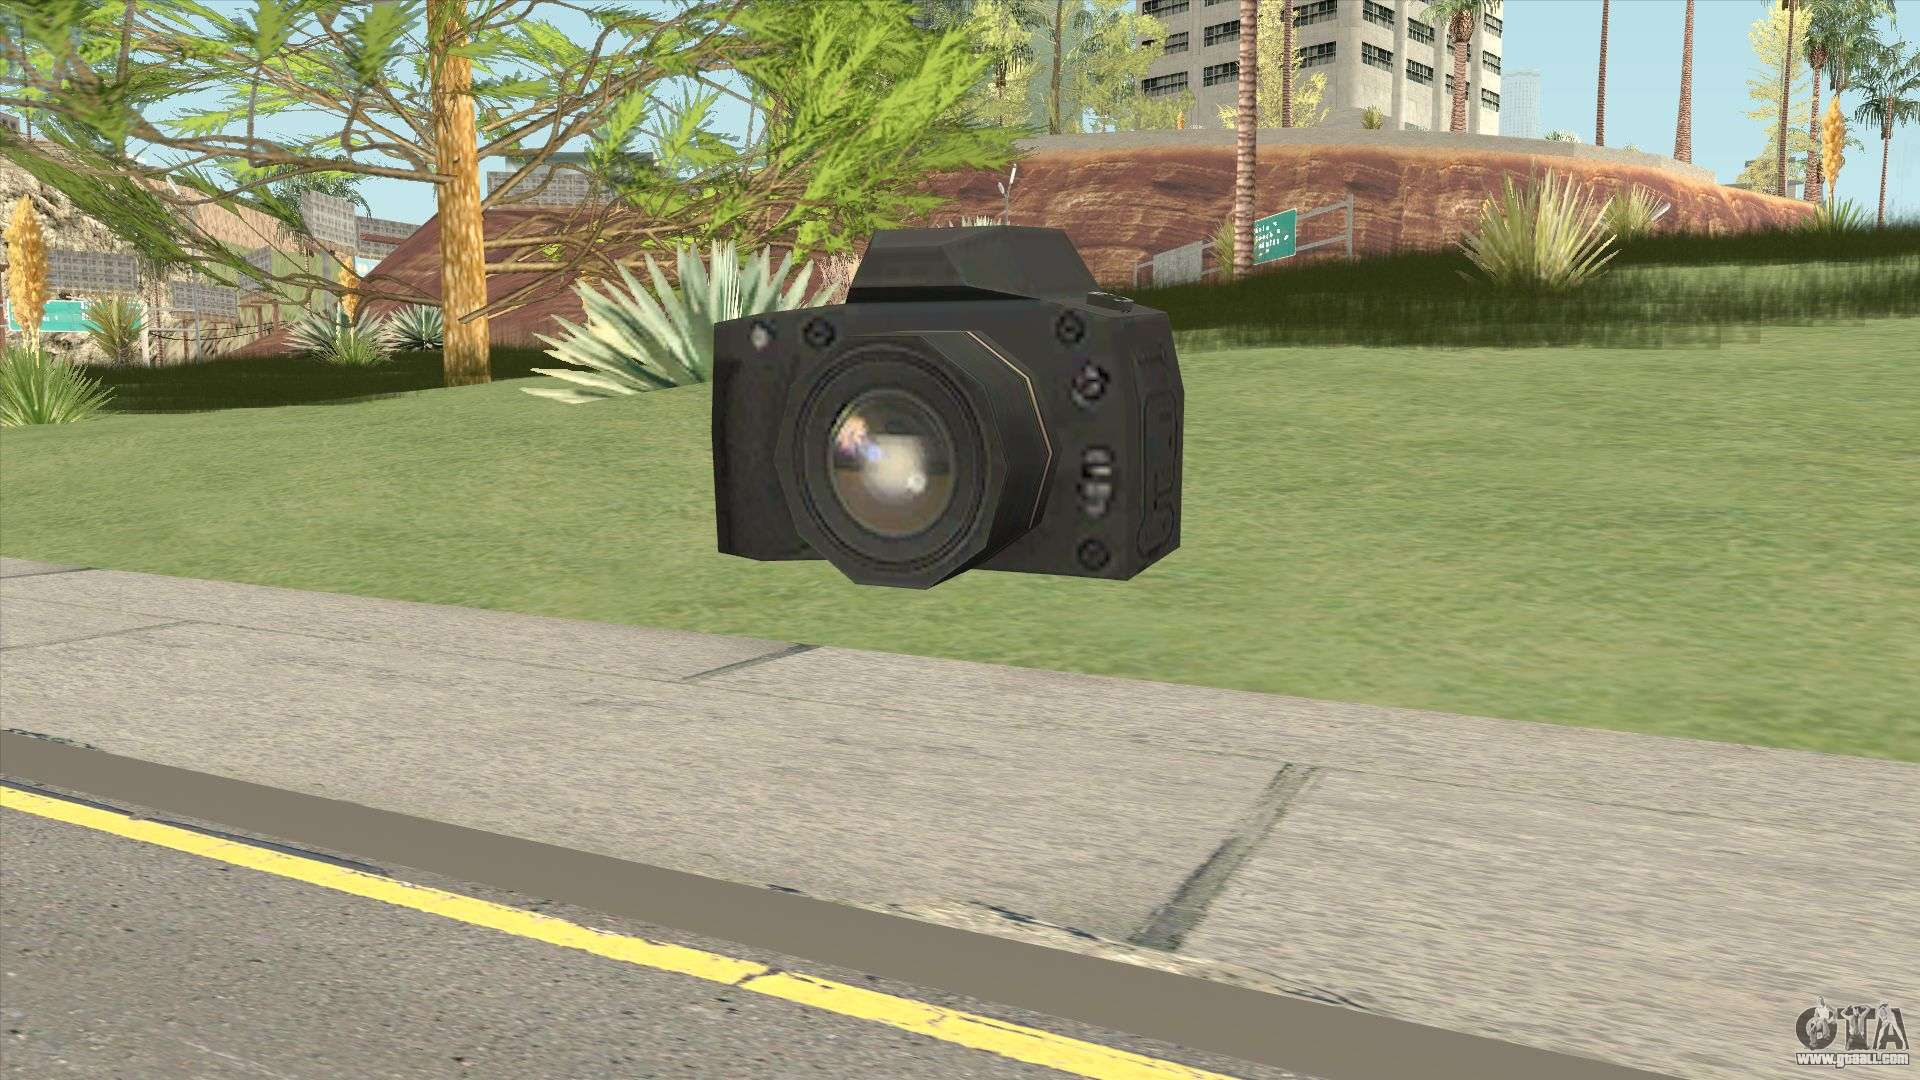 Camera software download for pc